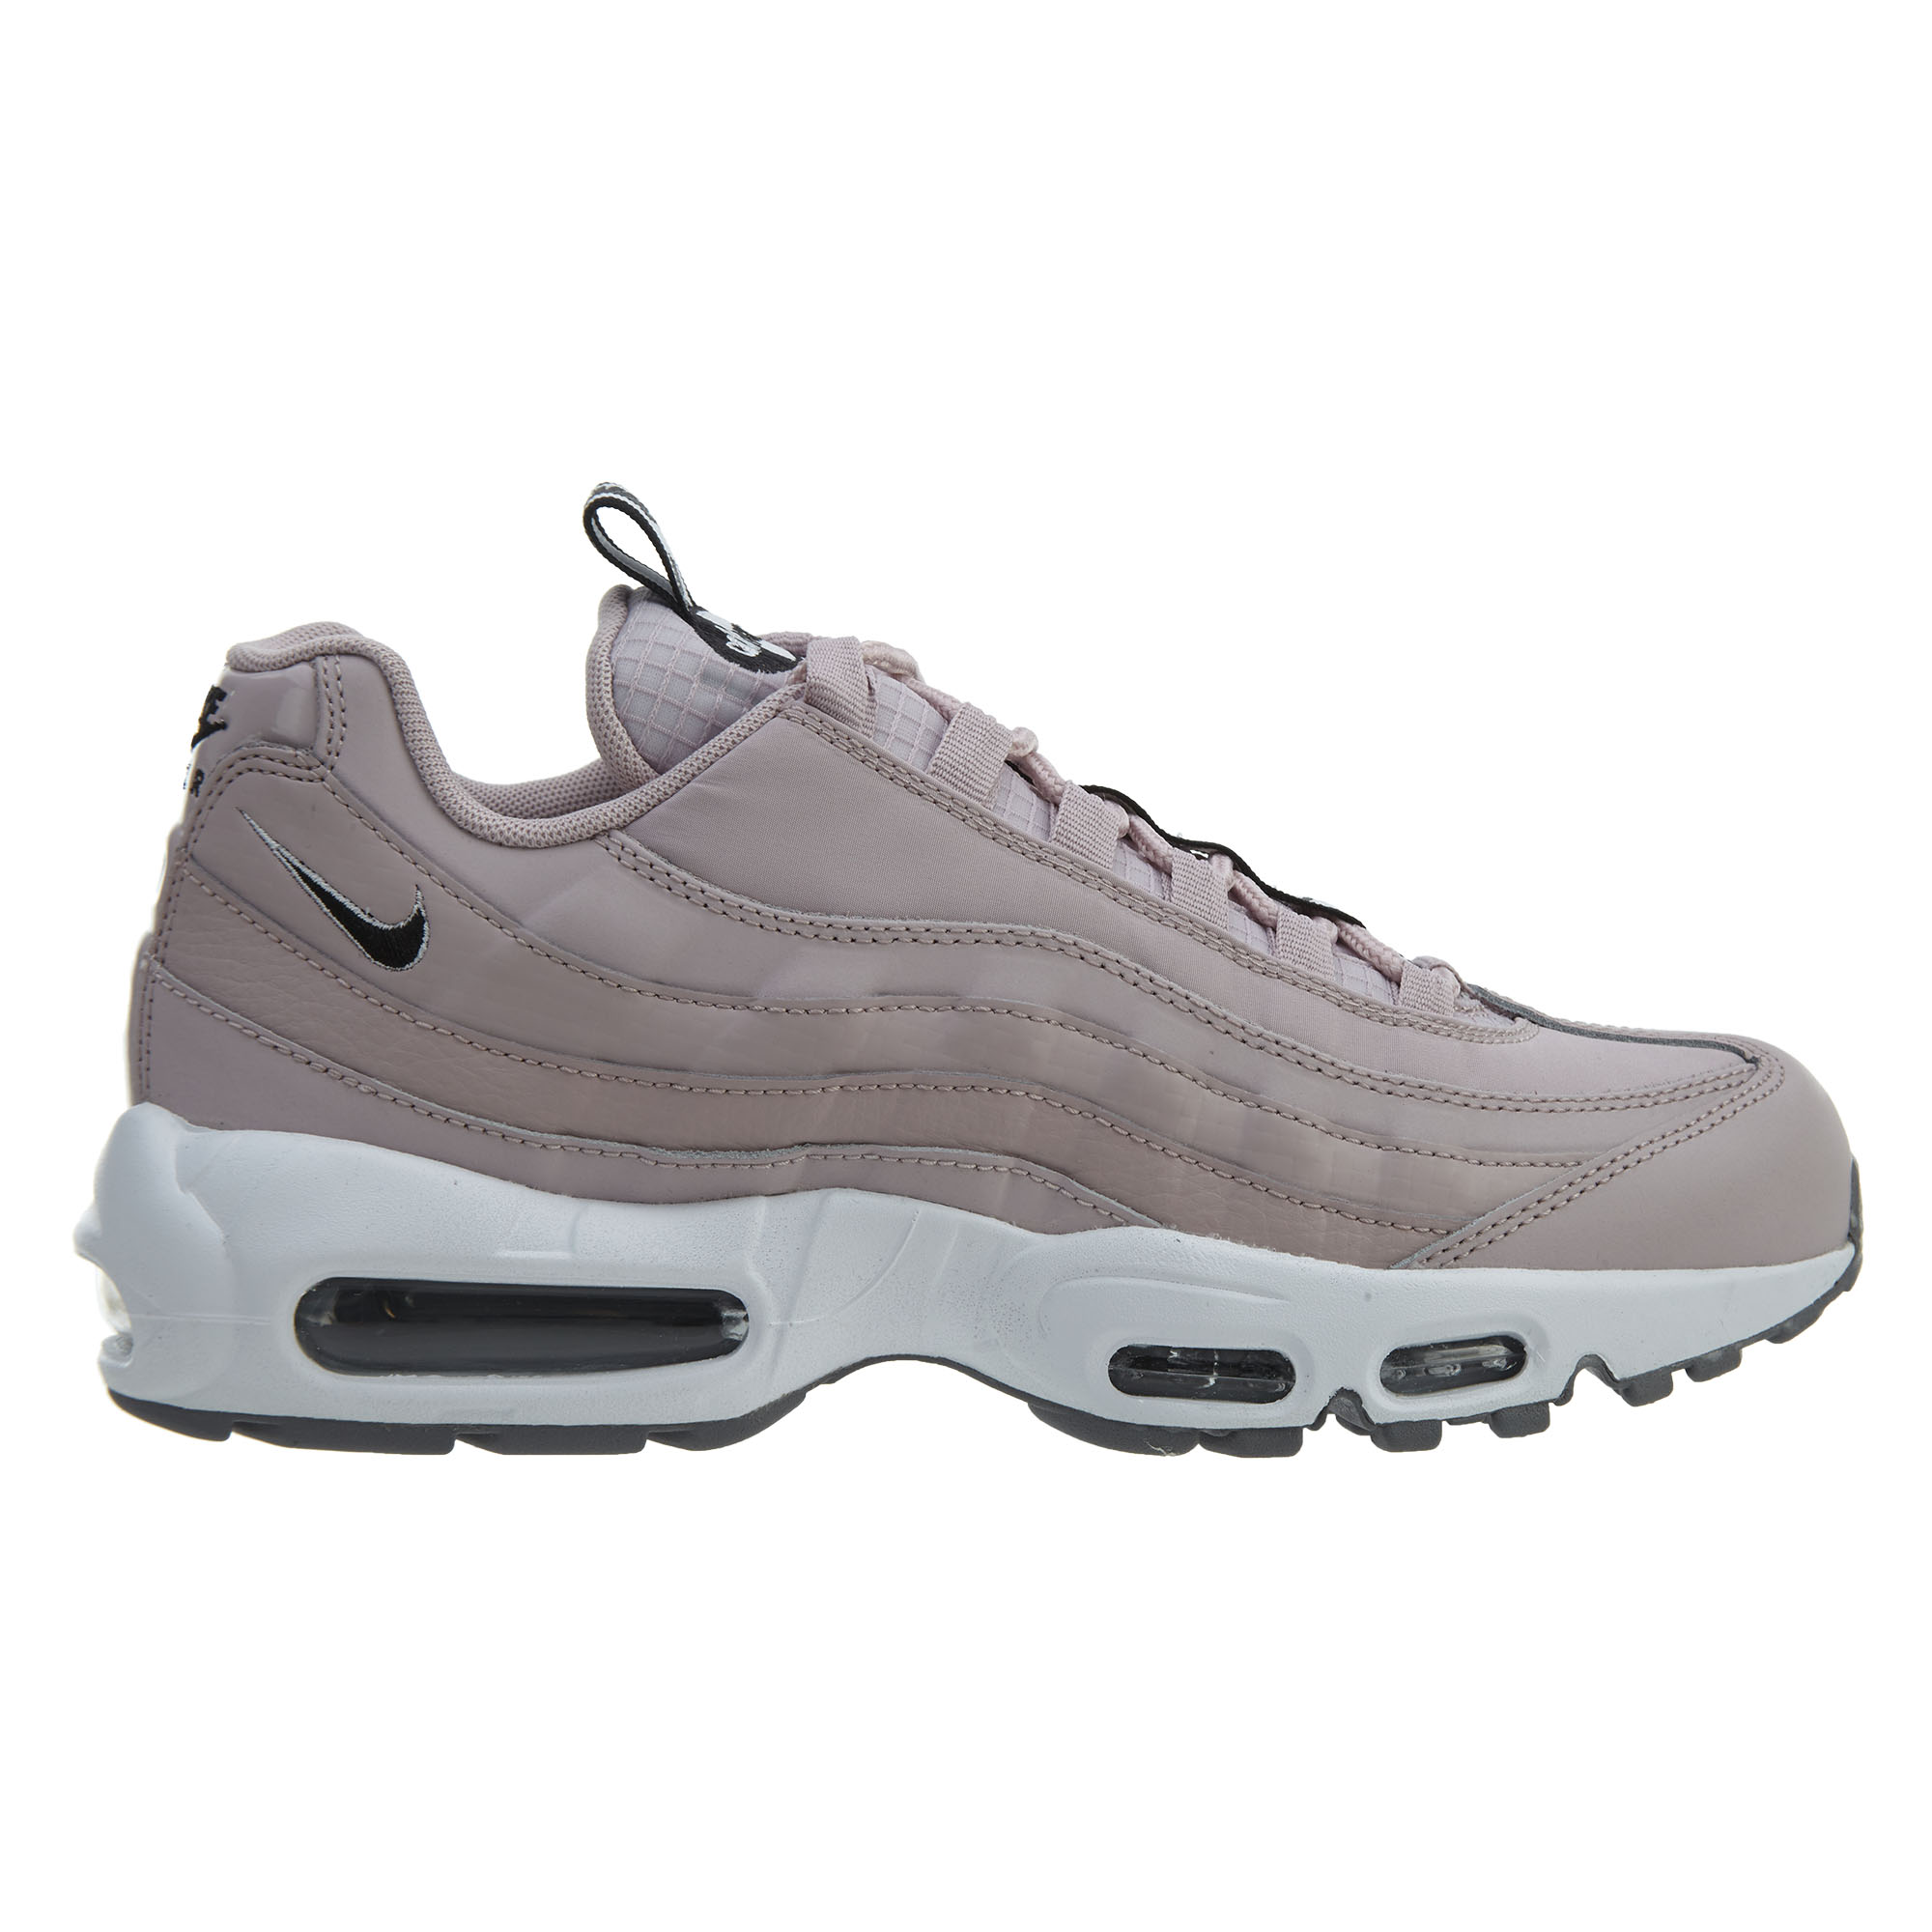 Nike Air Max 95 SE Running Shoes Particle RoseBlackWhite AQ4129 600 Size 10.5